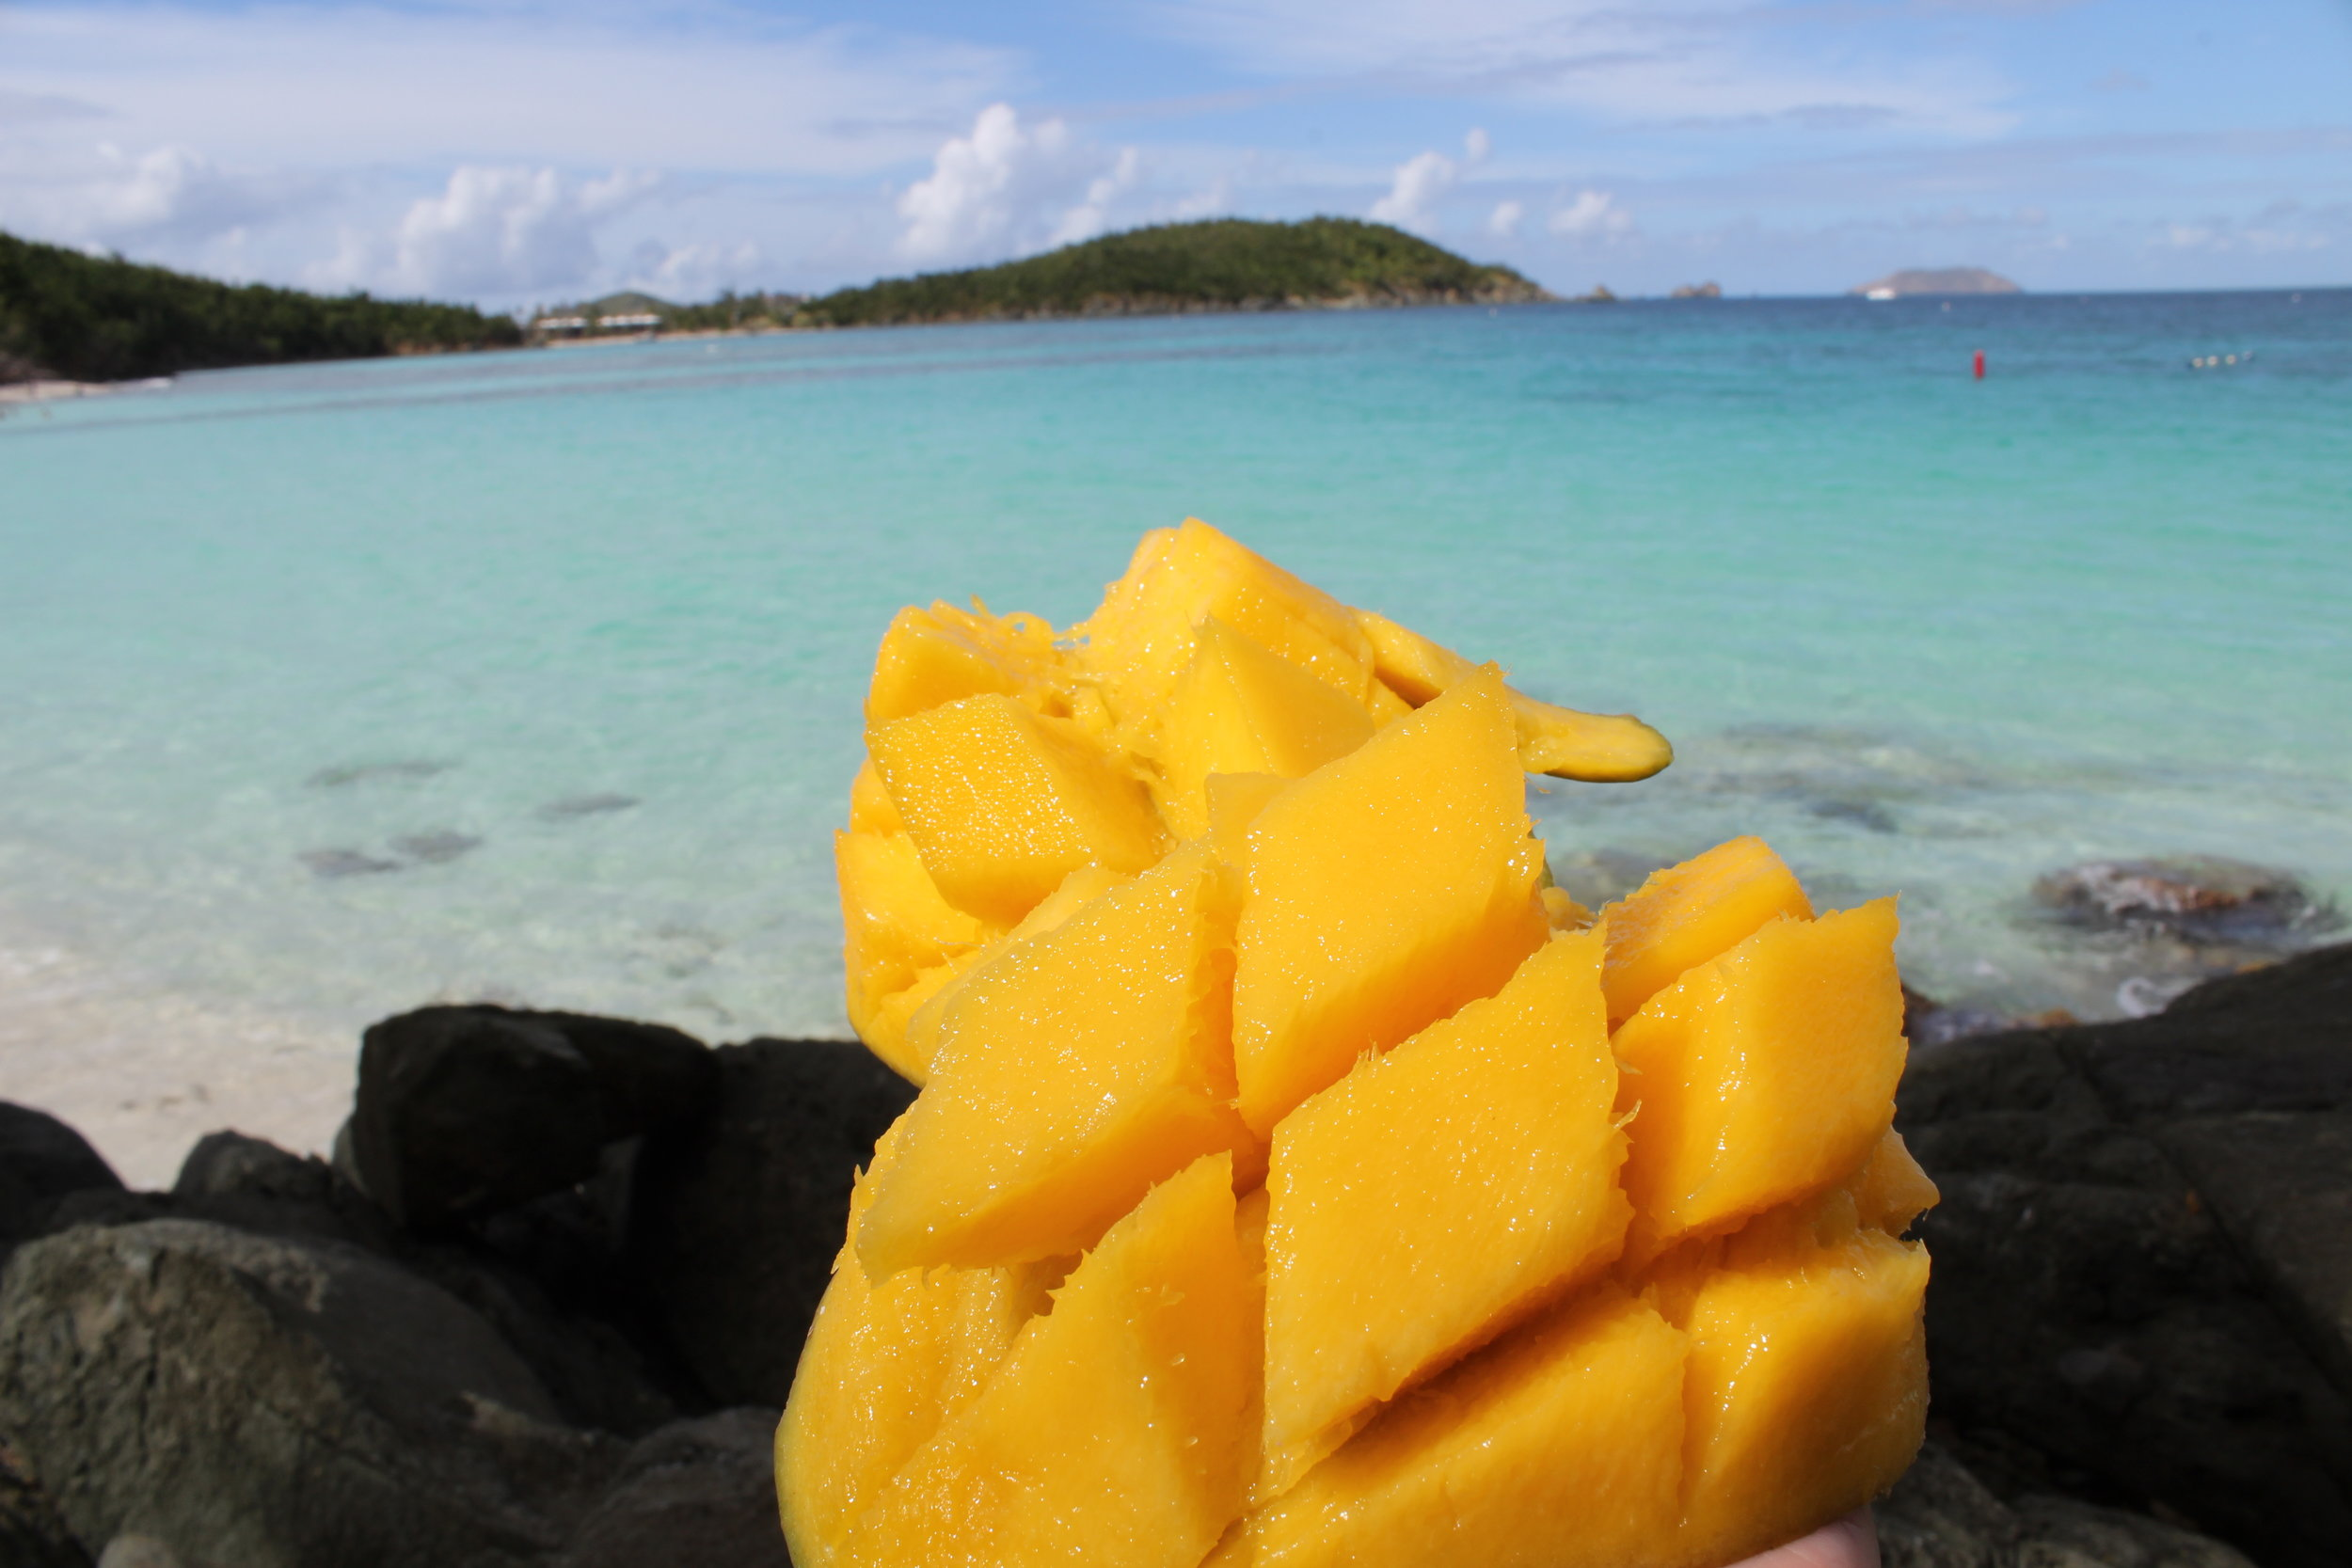 A mango I enjoyed while on vacation in St. John with my family.